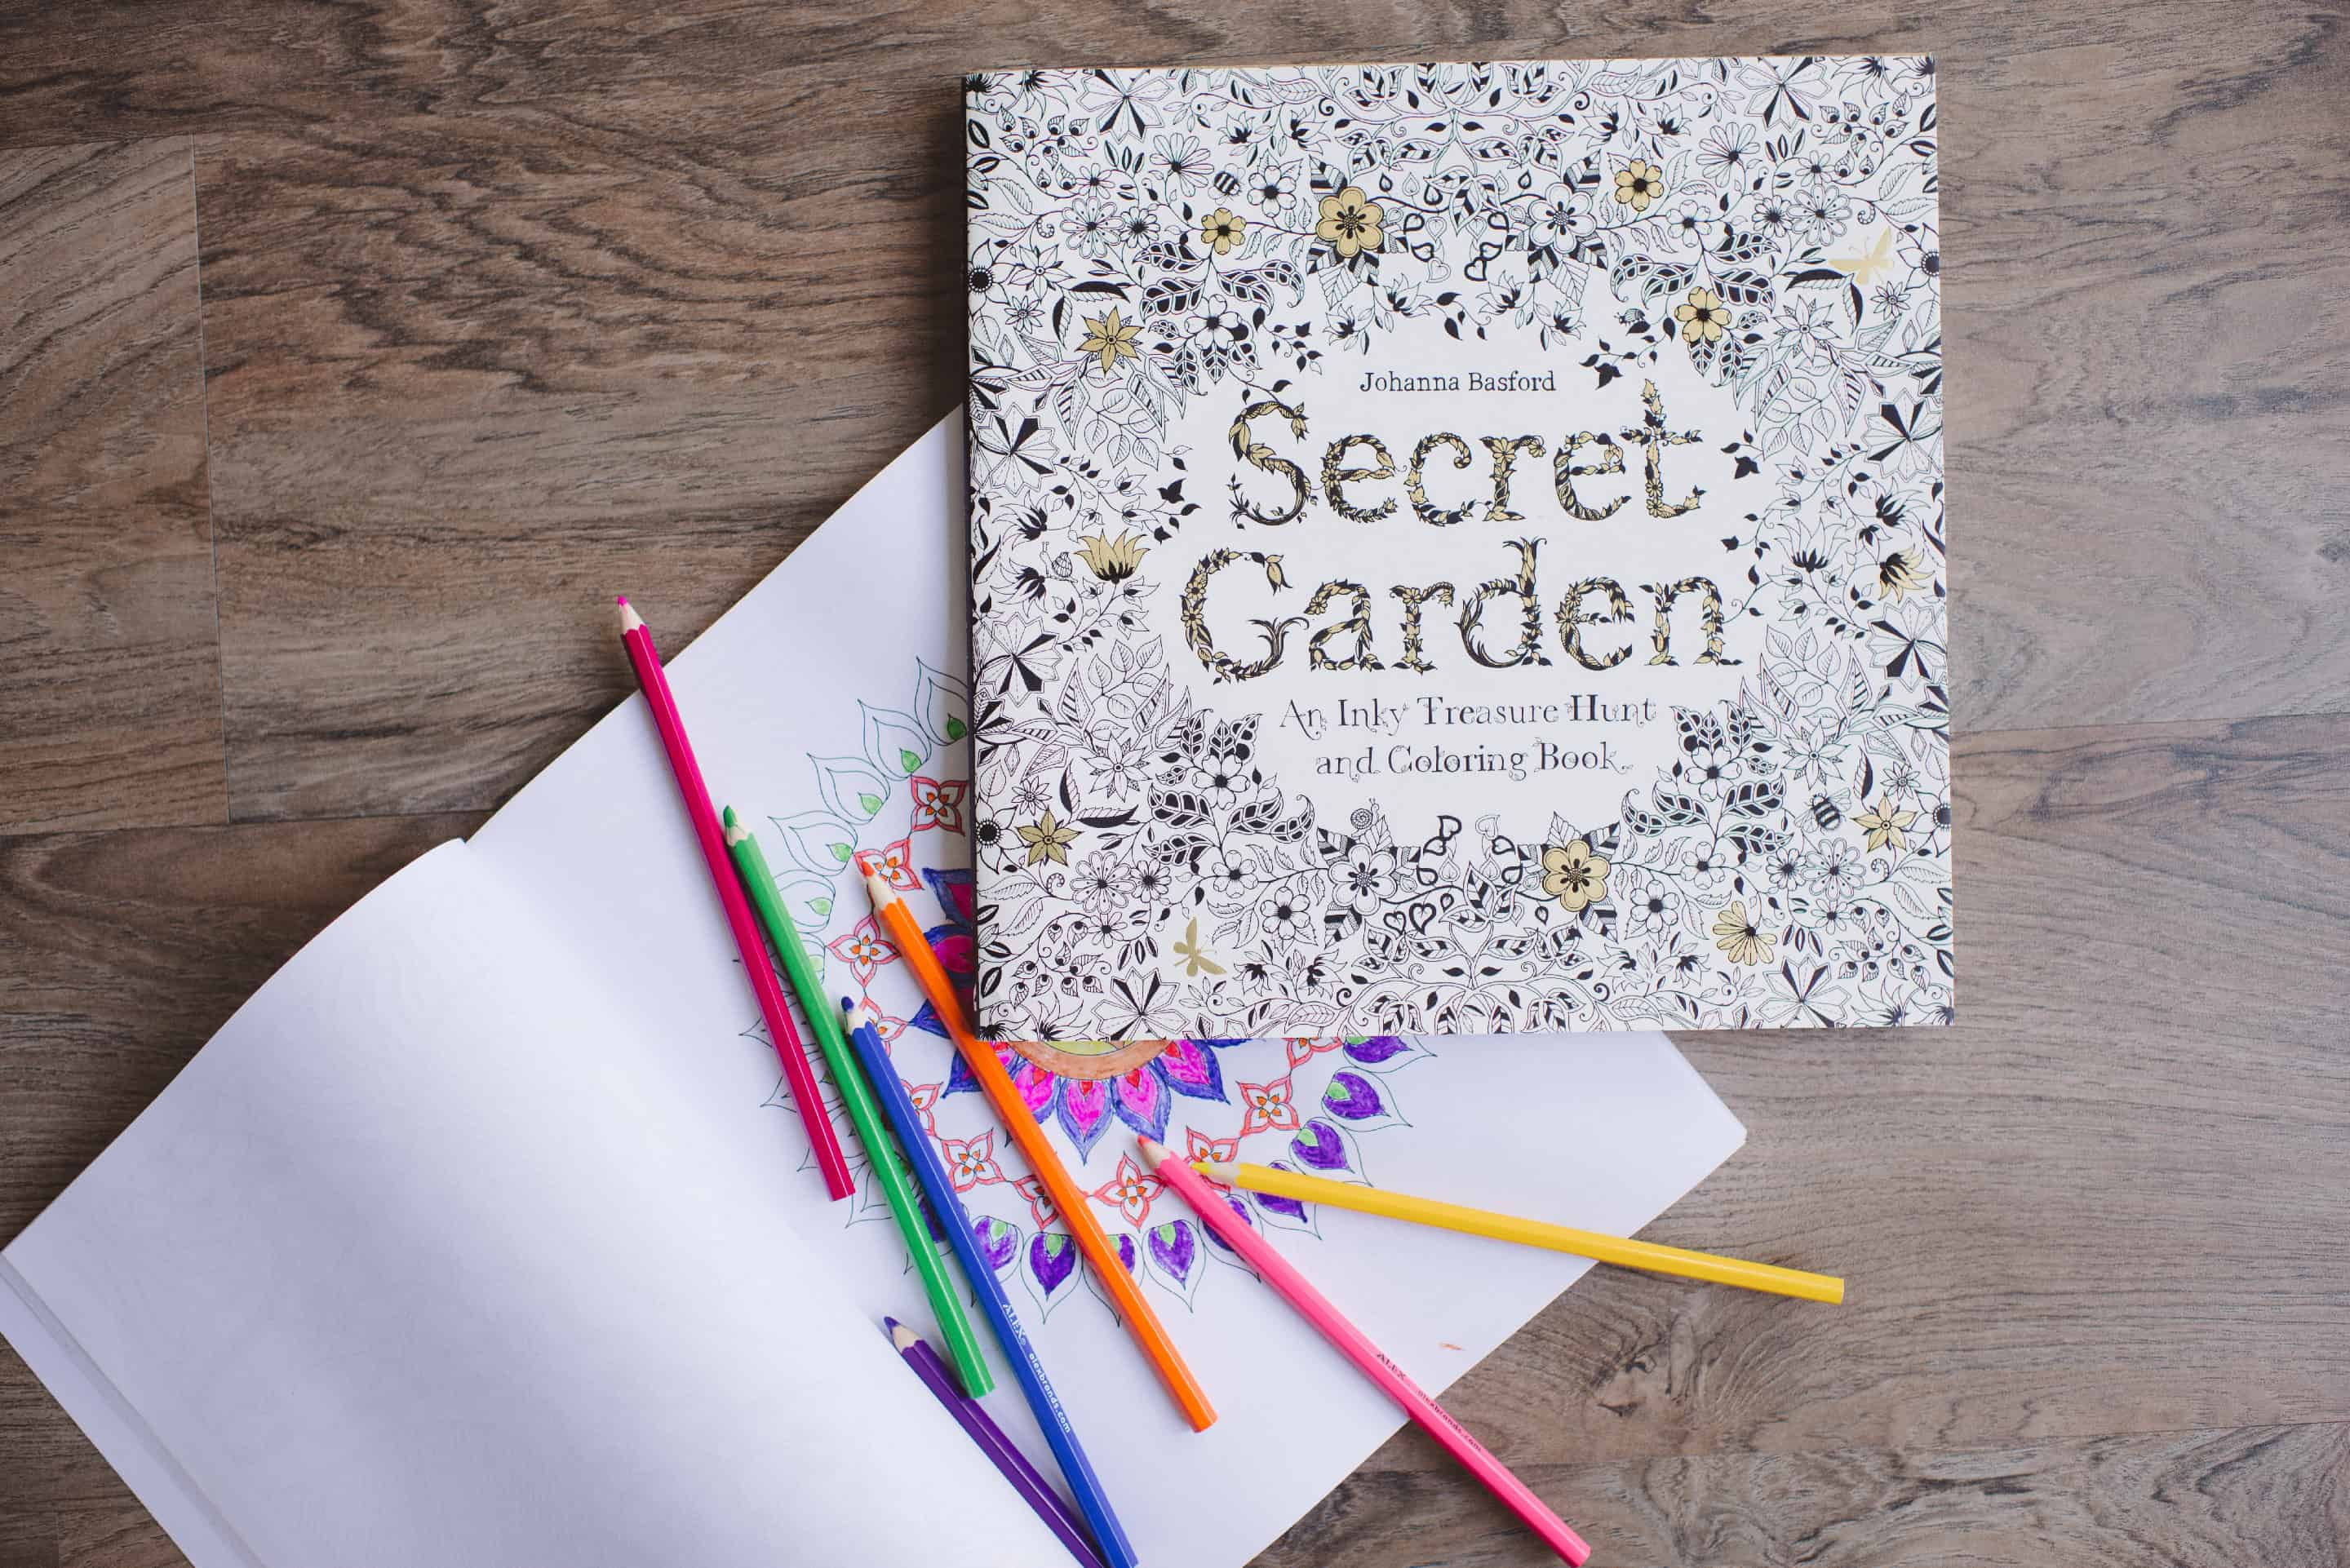 Adult Coloring Books • October Favorite Things by Tiffani Thiessen • Photos by Rebecca Sanabria